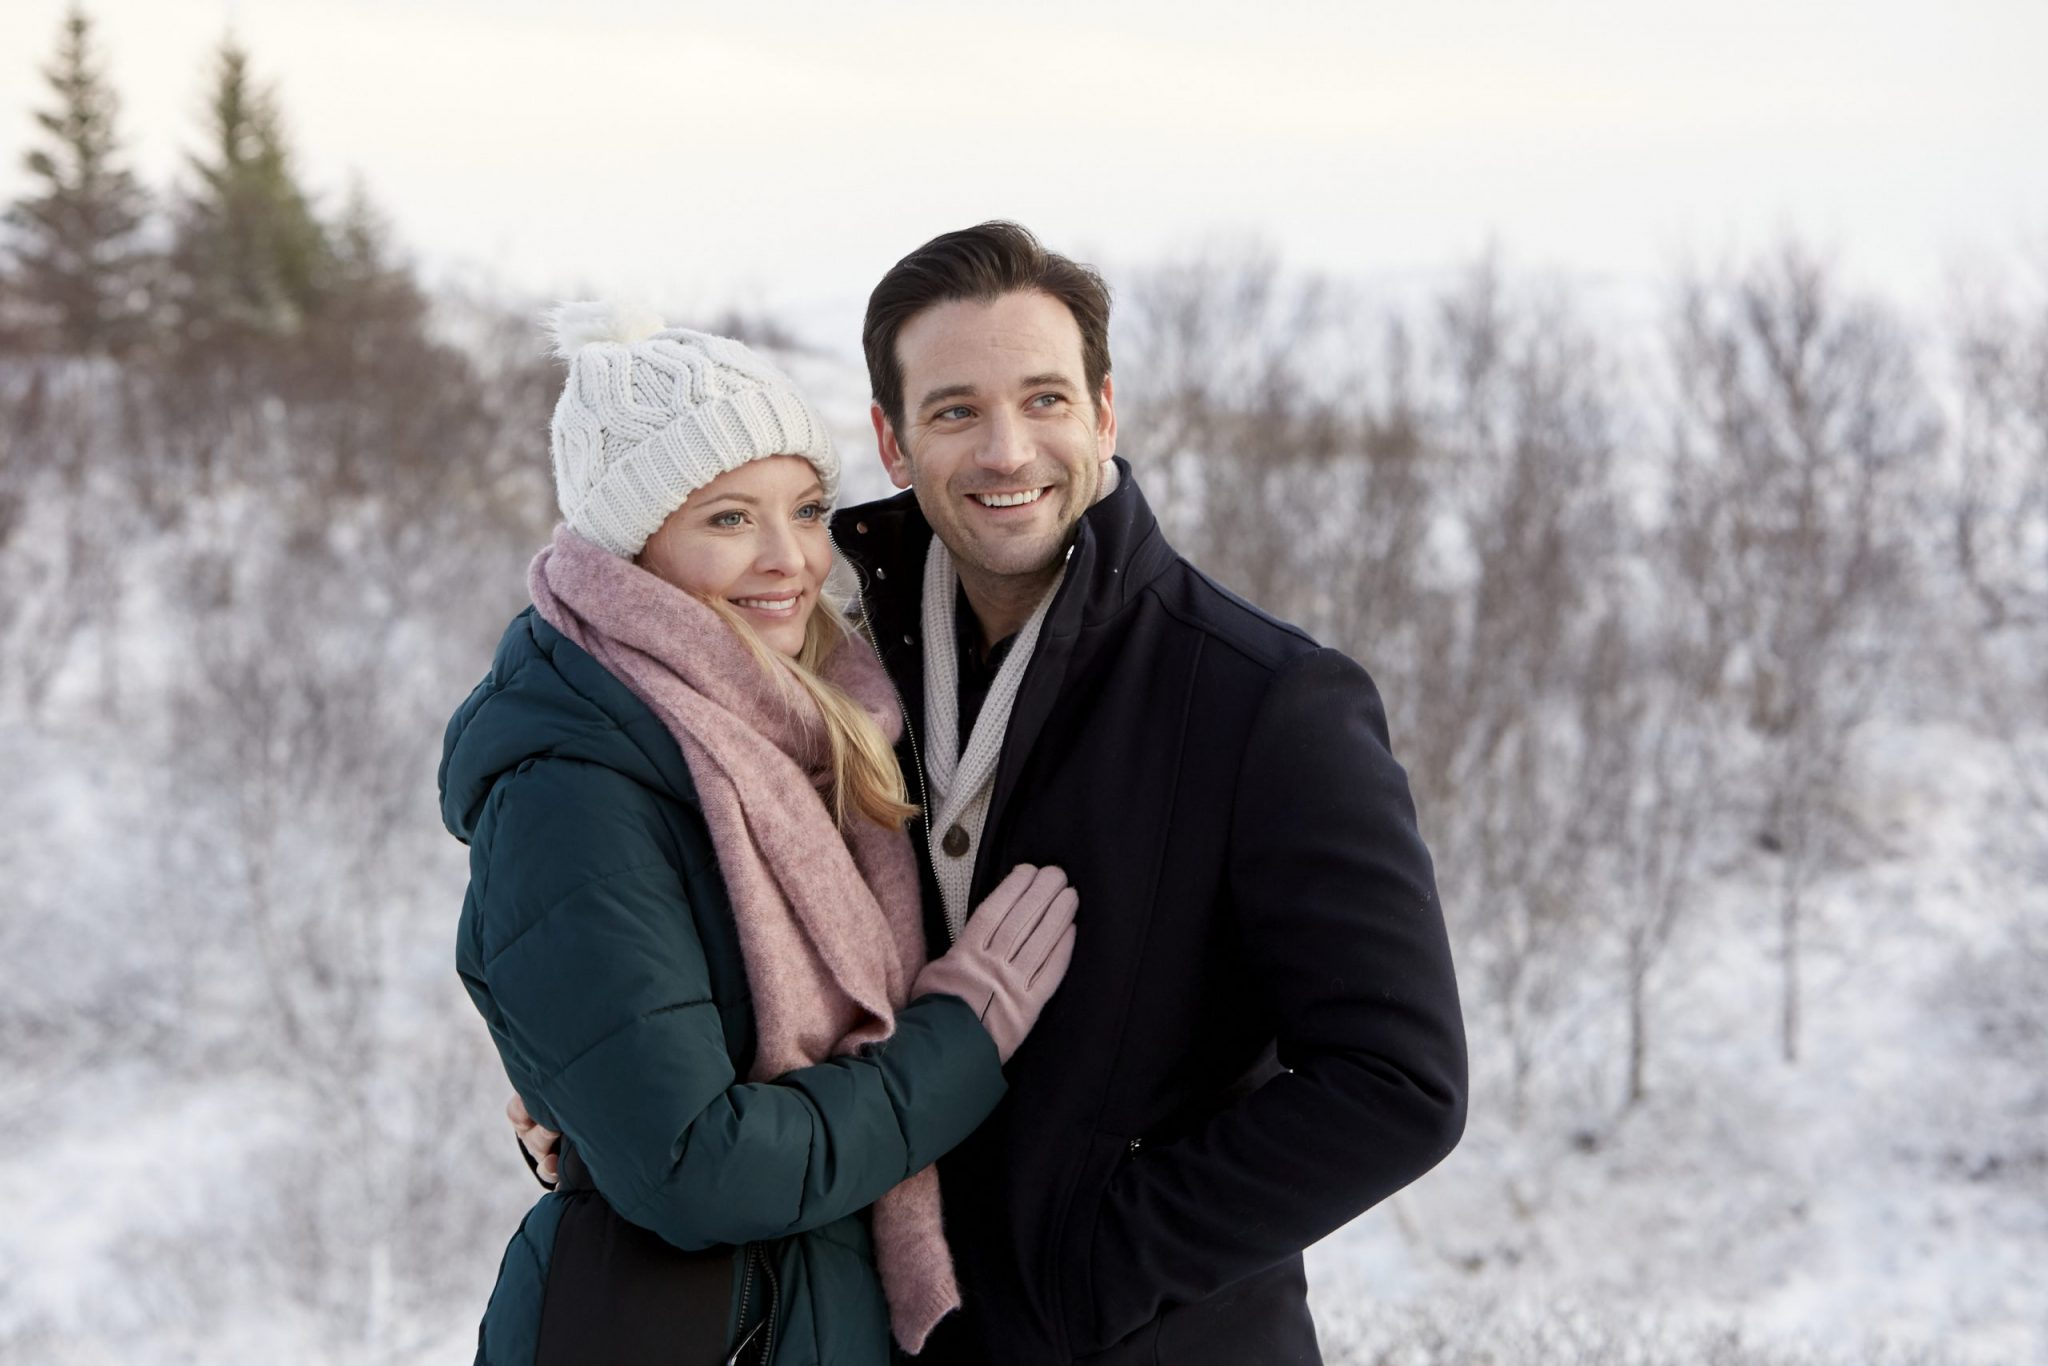 Love On Iceland, Hallmark, Photo: Kaitlin Doubleday, Colin Donnell Credit: ©2019 Crown Media United States LLC/Photographer: Lilja Jonsdottir